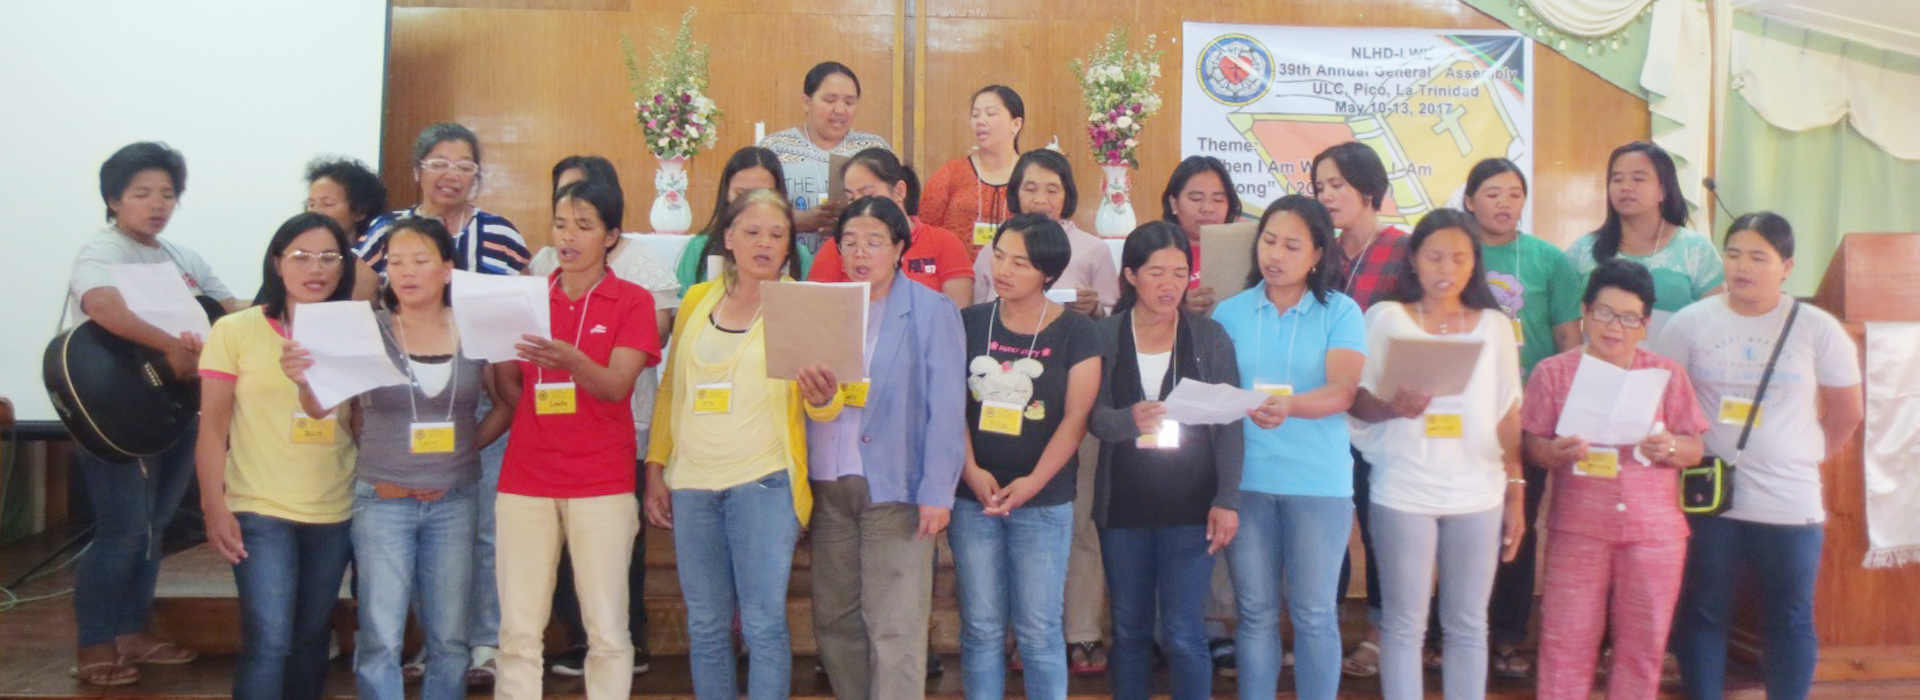 150 Attends NLHD-LWL 39th Assembly